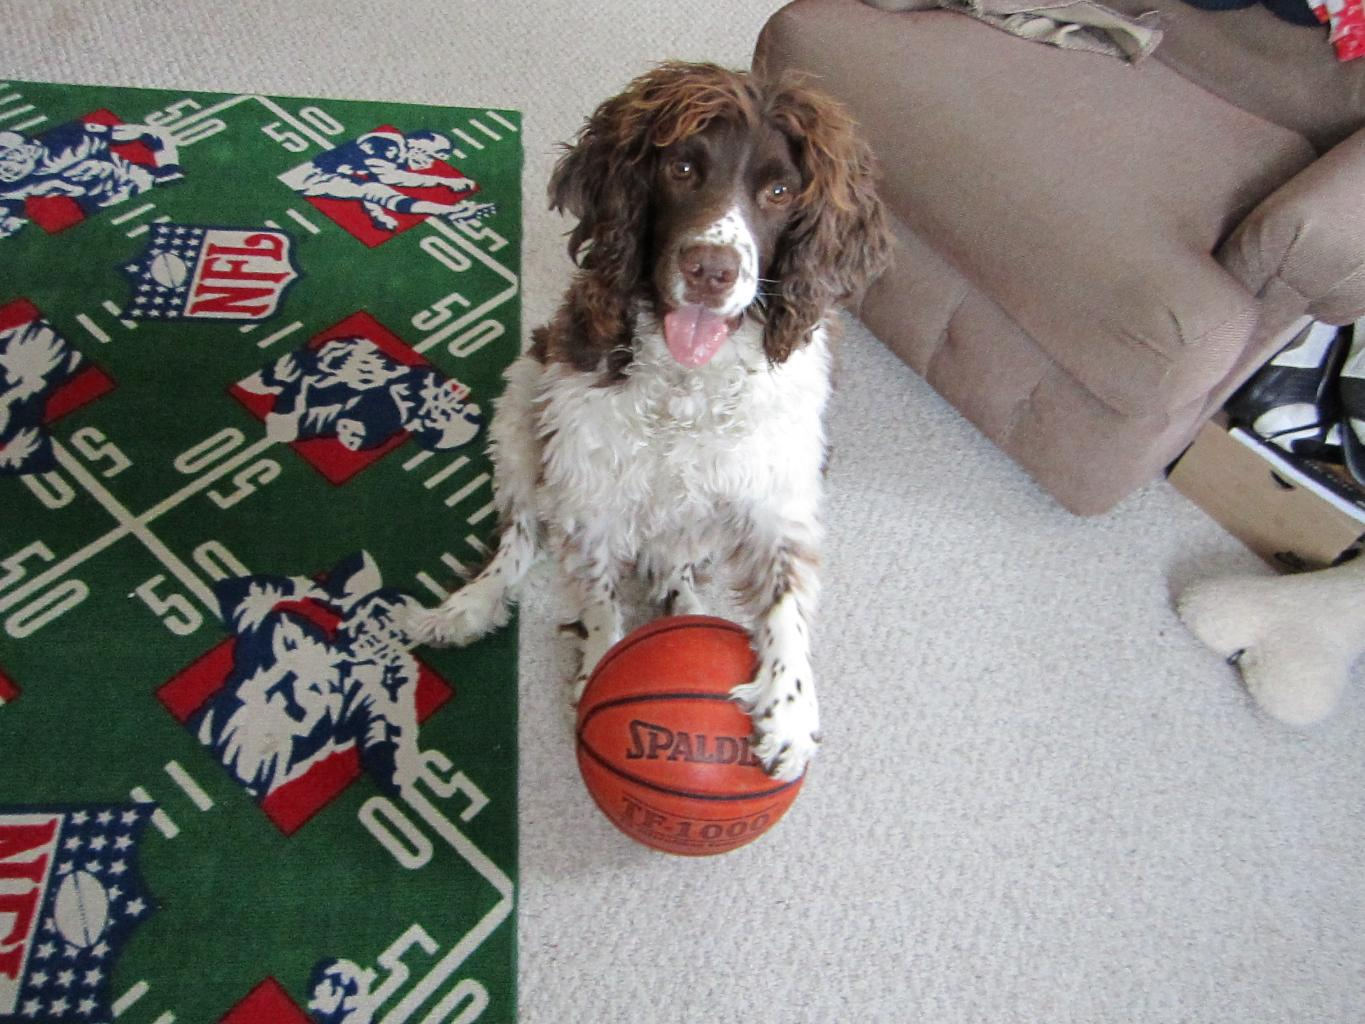 Skylark learned a new trick---how to dribble! Tags: English Springer Spaniel